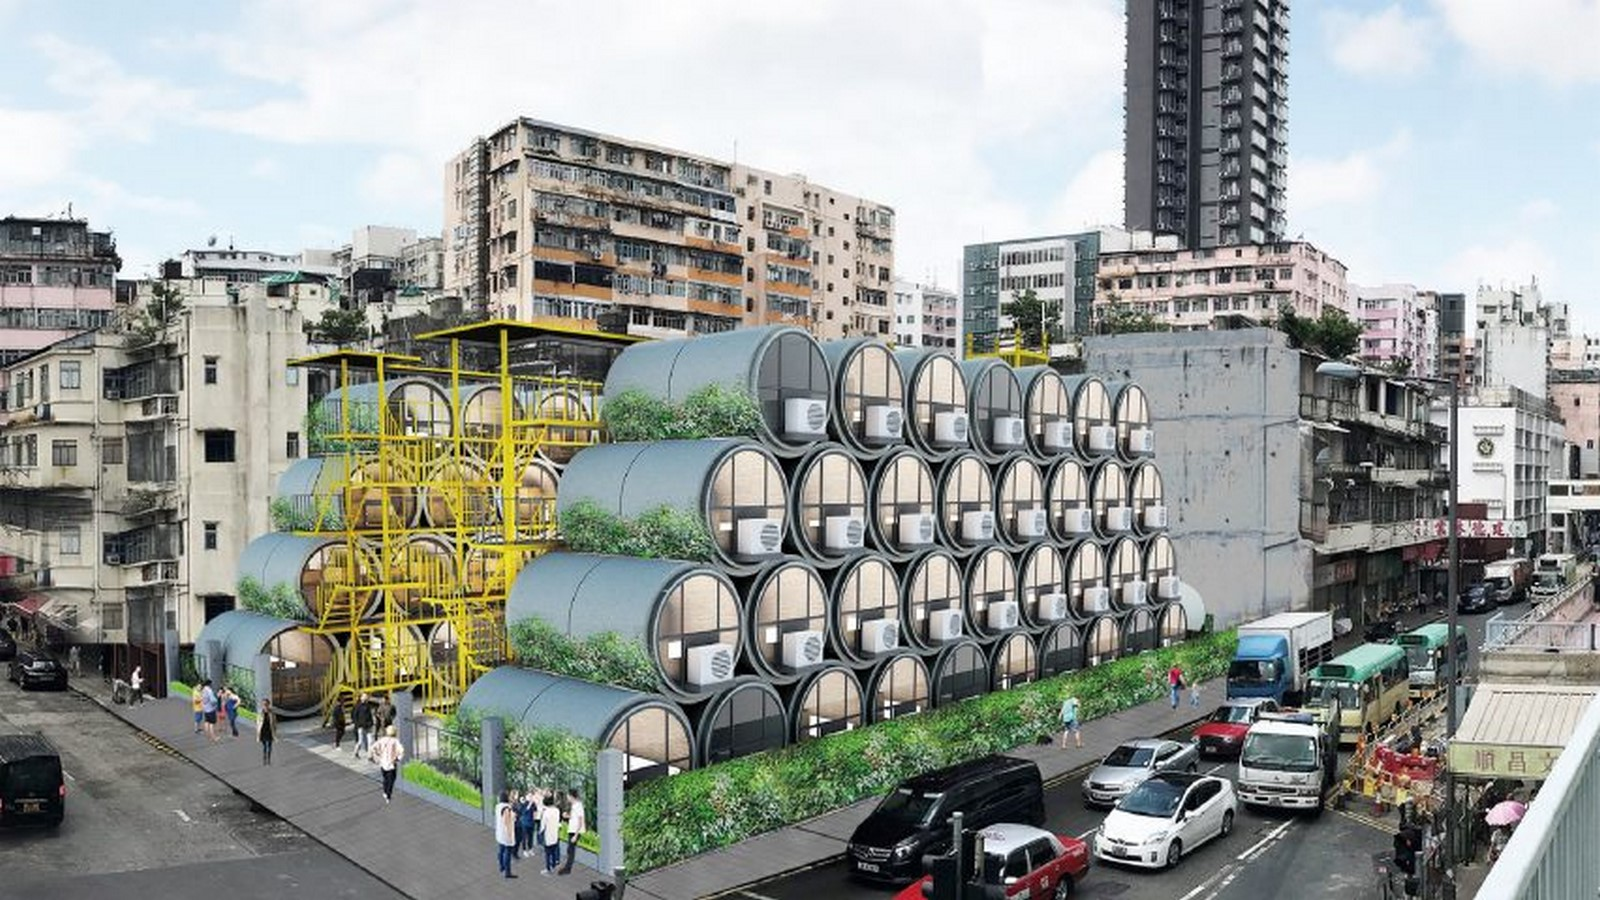 Where does architecture lie in the future of Hong Kong? - Sheet3